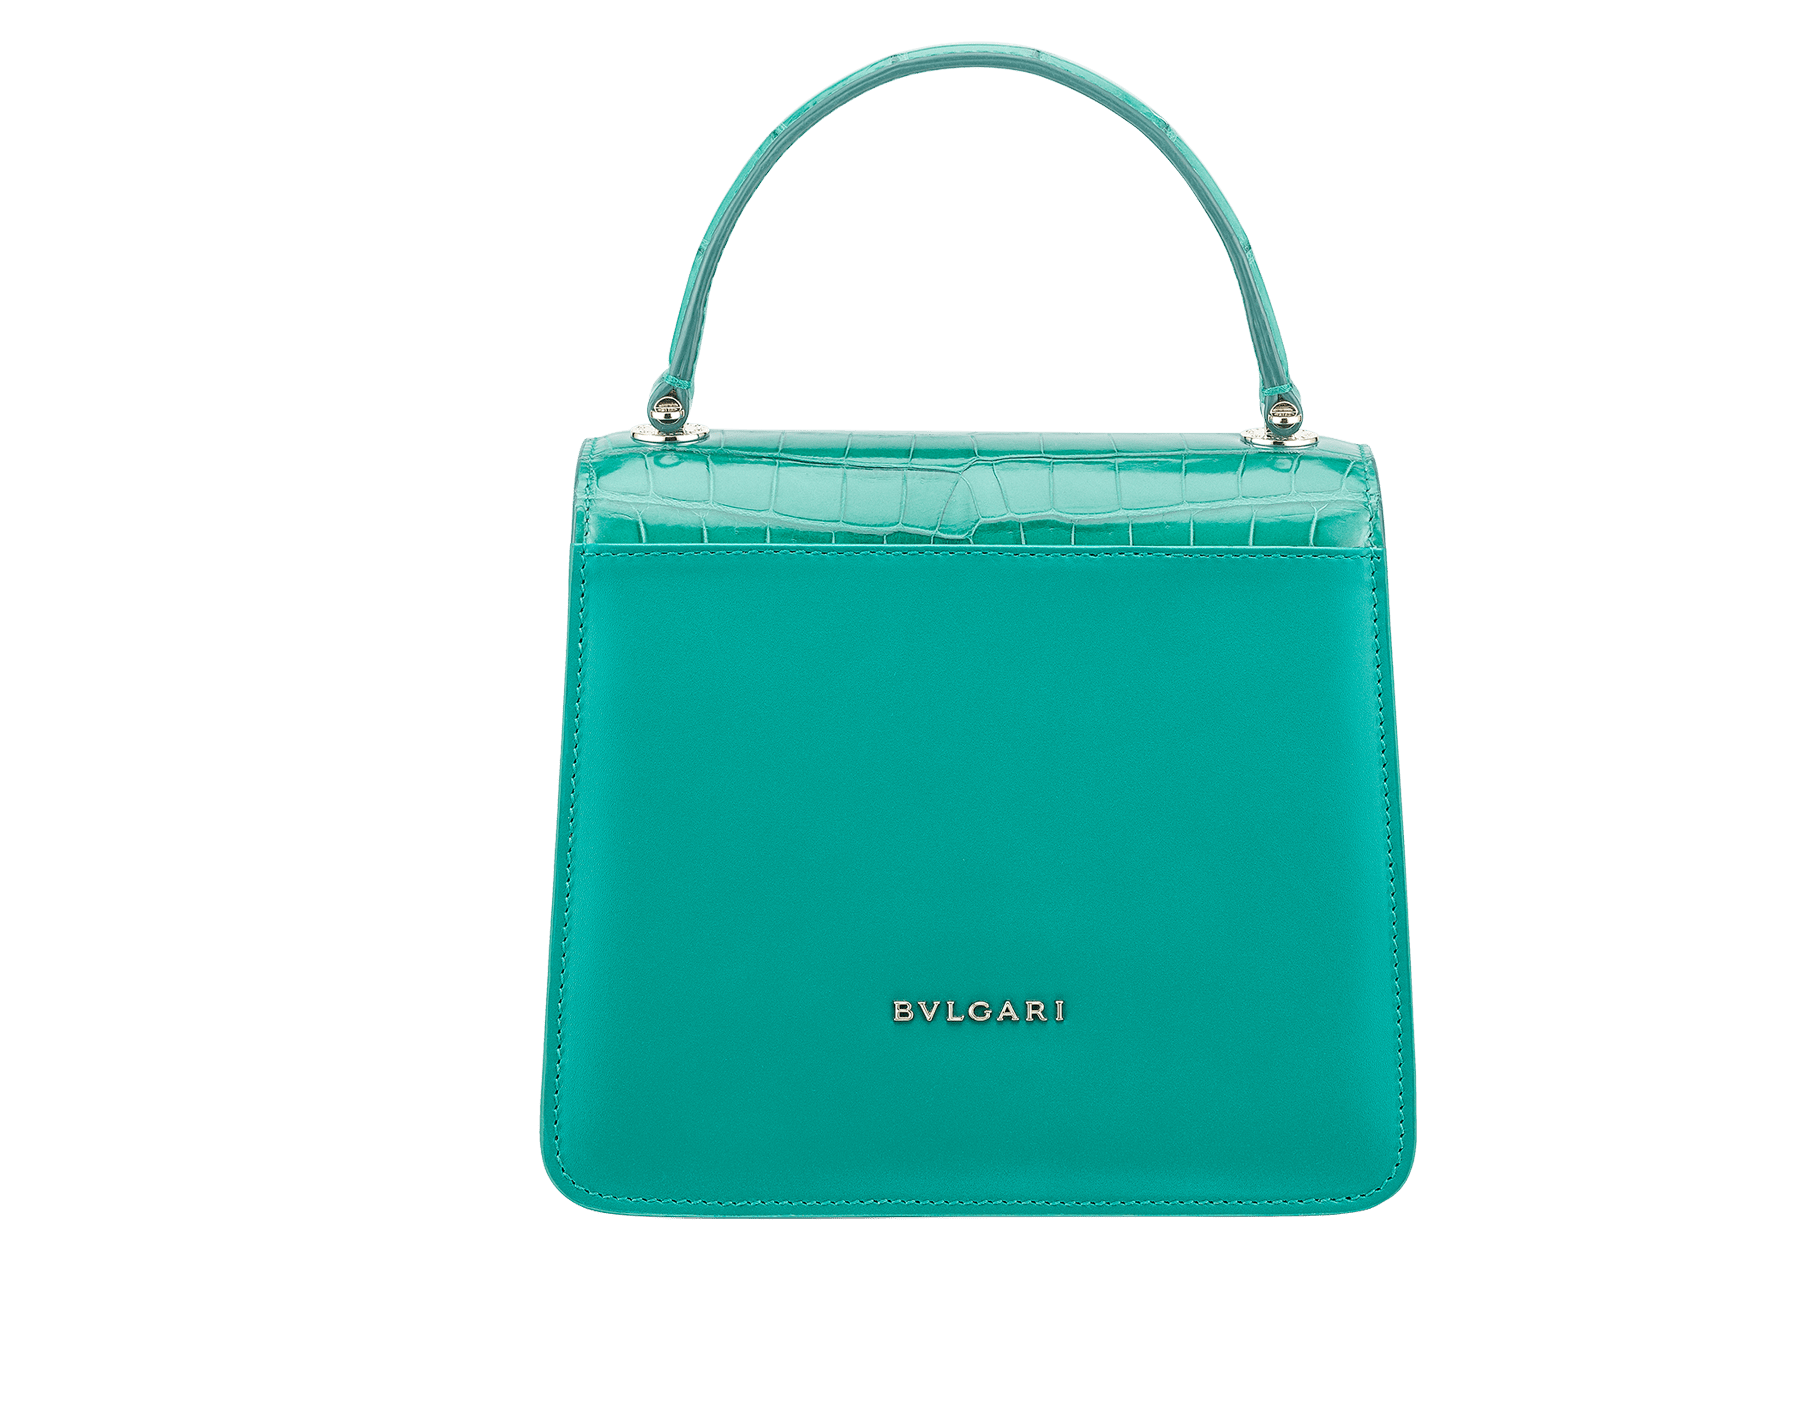 Serpenti Forever crossbody bag in tropical turquoise shiny croco skin and smooth calf leather. Snakehead closure in light gold plated brass decorated with black and white enamel, and green malachite eyes. 752-CLCR image 3